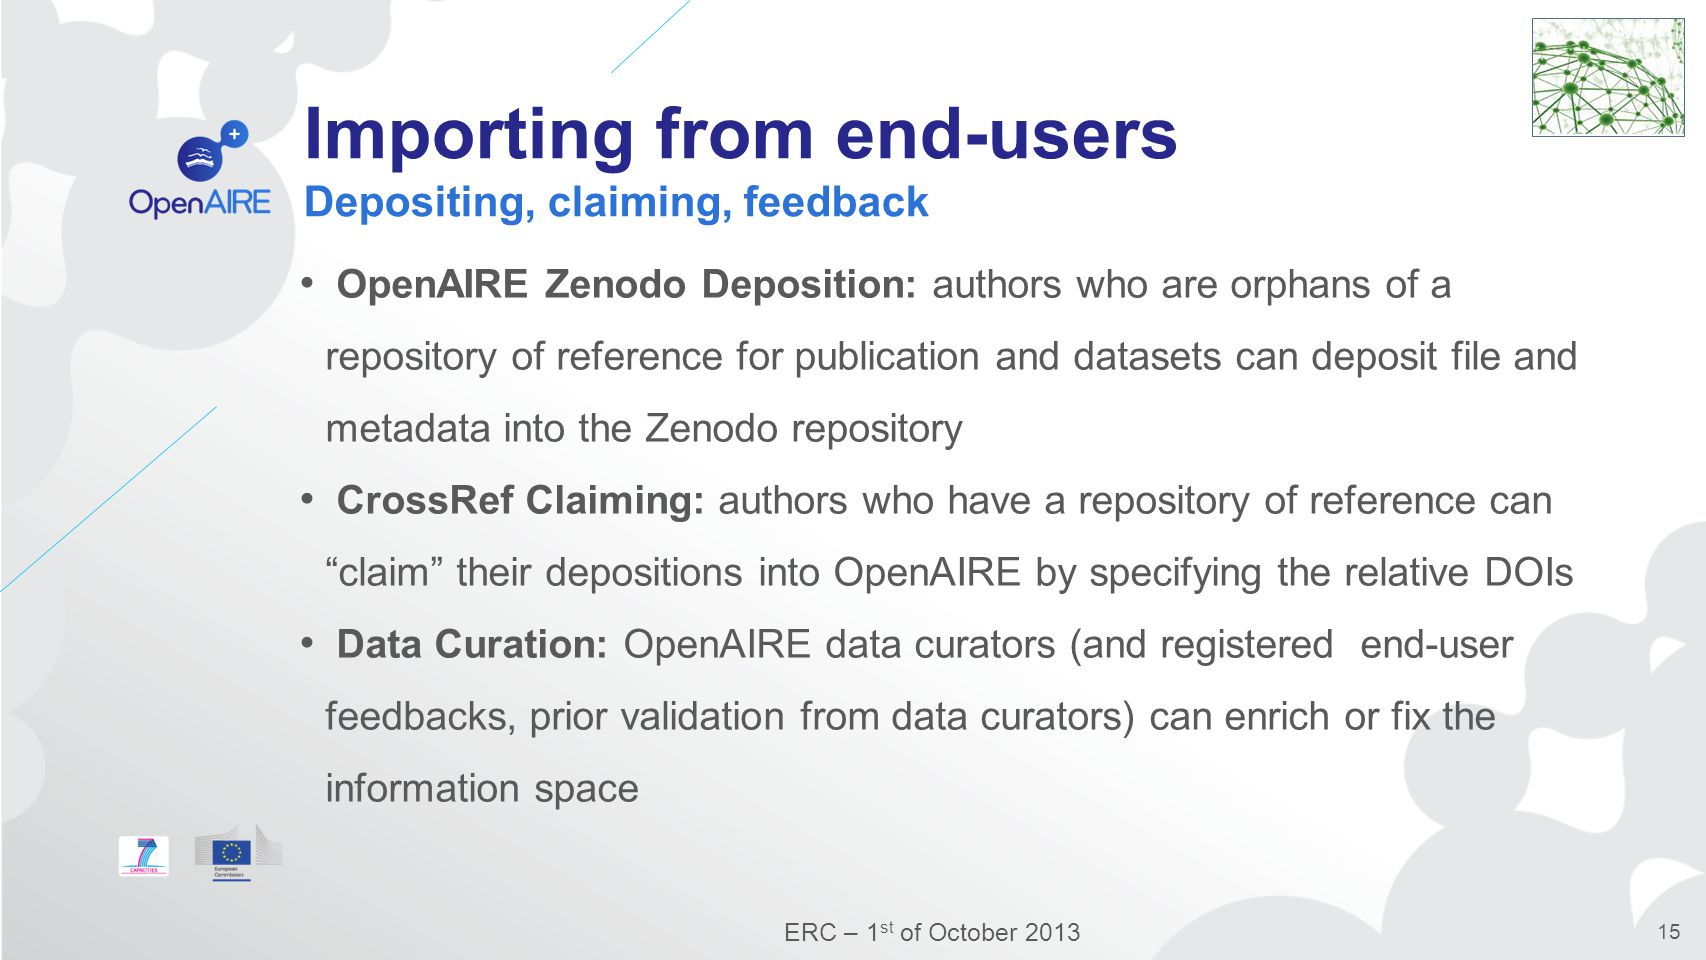 Importing from end-users Depositing, claiming, feedback OpenAIRE Zenodo Deposition: authors who are orphans of a repository of reference for publication and datasets can deposit file and metadata into the Zenodo repository CrossRef Claiming: authors who have a repository of reference can claim their depositions into OpenAIRE by specifying the relative DOIs Data Curation: OpenAIRE data curators (and registered end-user feedbacks, prior validation from data curators) can enrich or fix the information space ERC – 1 st of October 2013 15